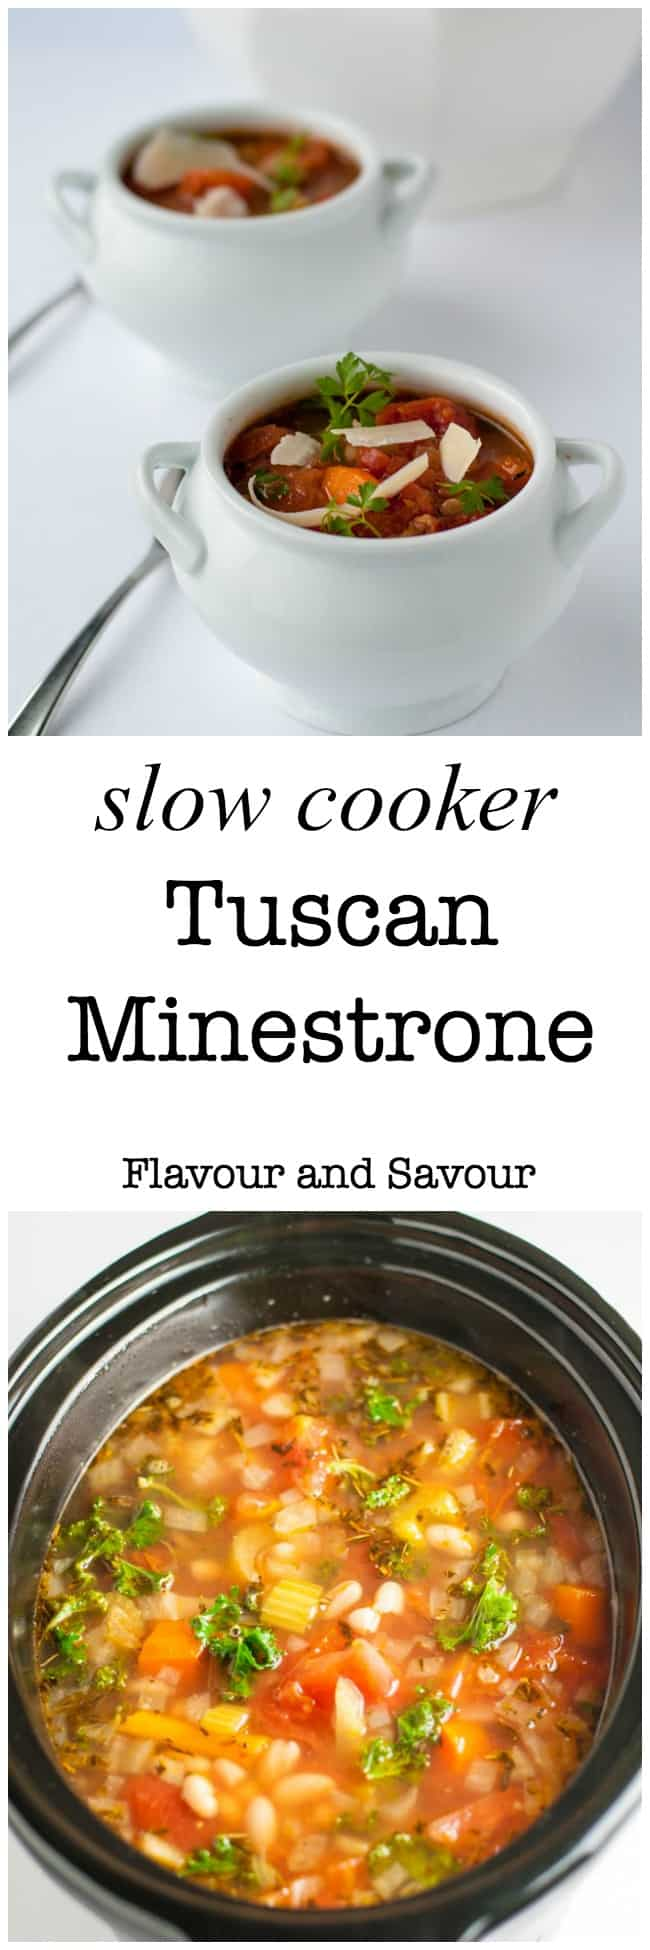 This one-pot healthy and hearty Tuscan Minestrone soup is brimming with rich Italian tomato flavour. It's an easy slow-cooker soup. Set it and forget it!  It's a simple, rustic meatless meal that totally satisfies. #vegetarian #glutenfree #slowcooker #minestrone #Italian